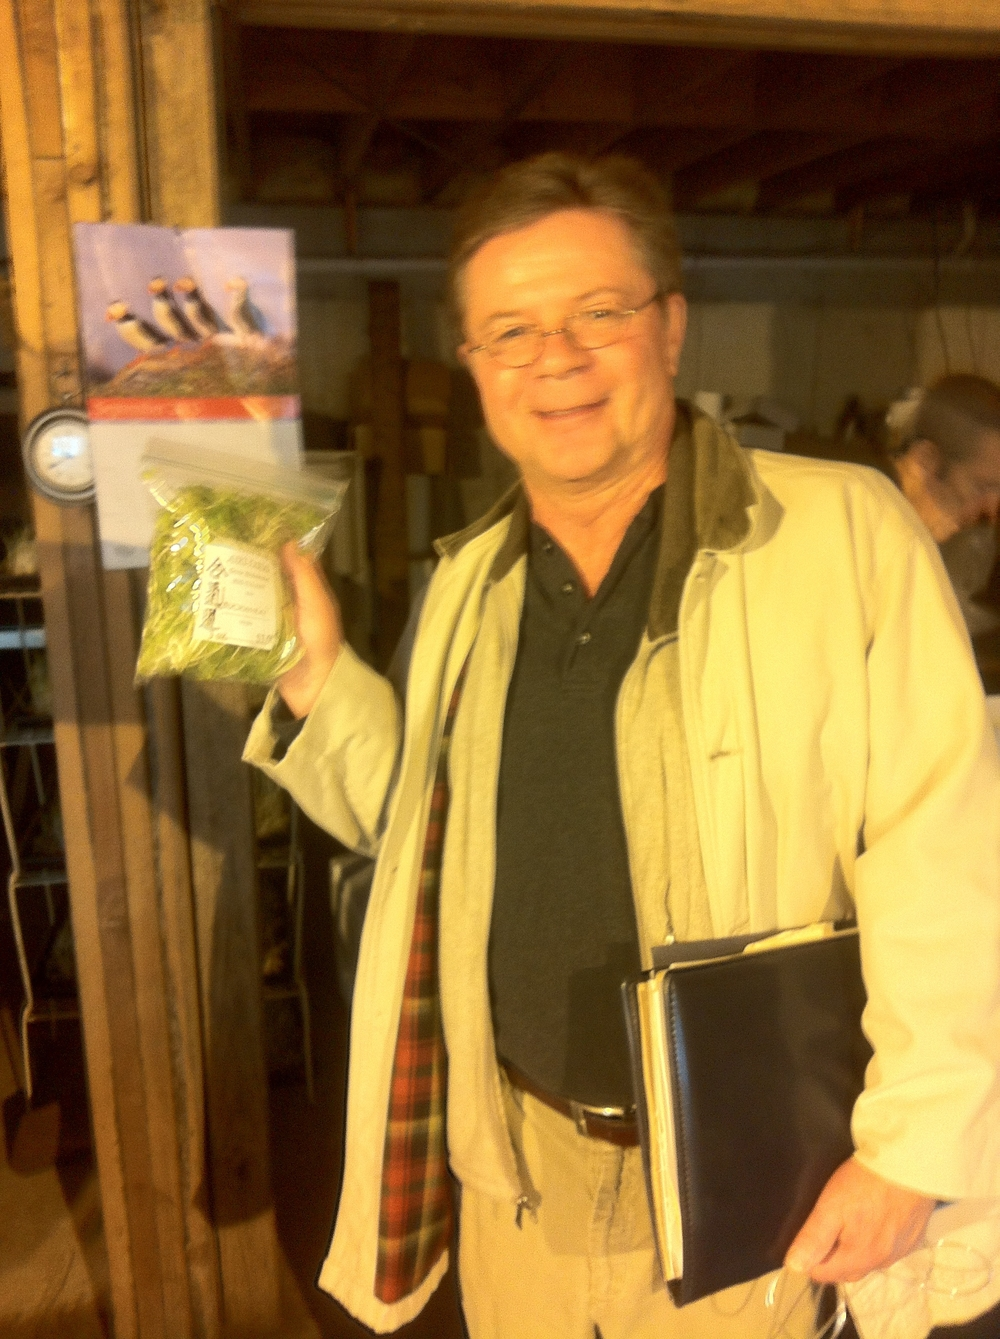 Bob treated us to samples; Paul Jakoboski of St. Francis House is eager to try the sprouted seedlings.